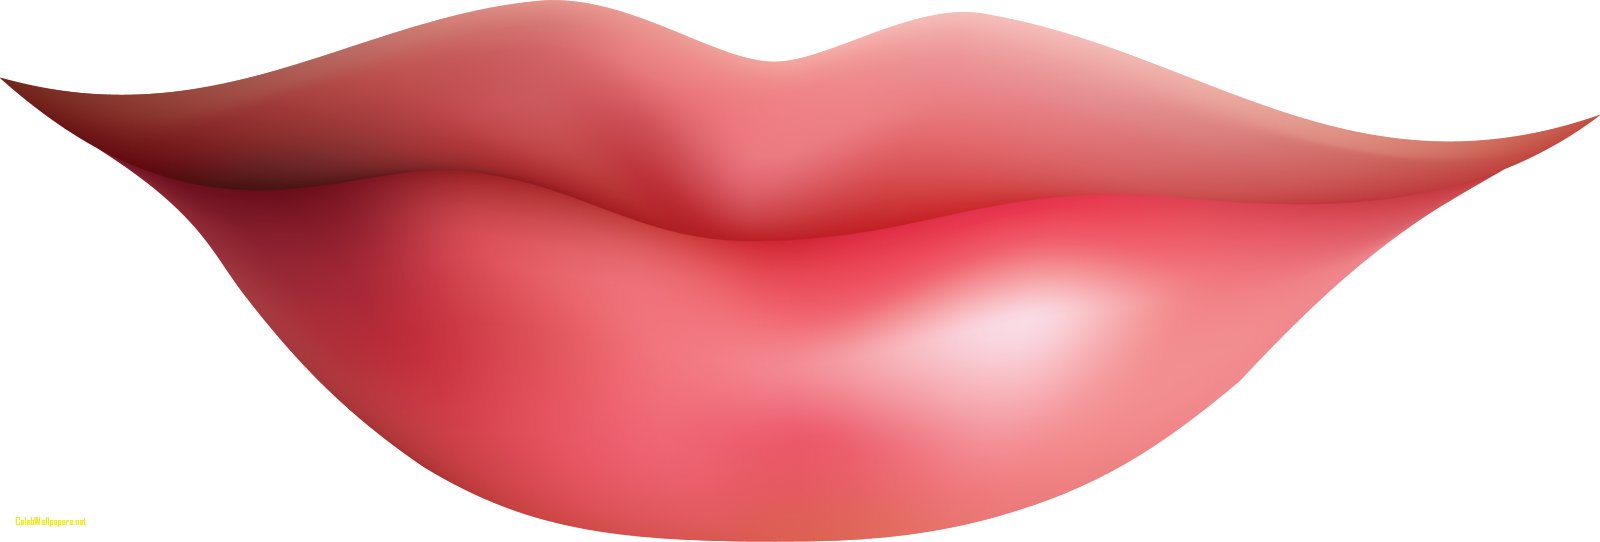 Lip clipart. Lips image cliparting fresh